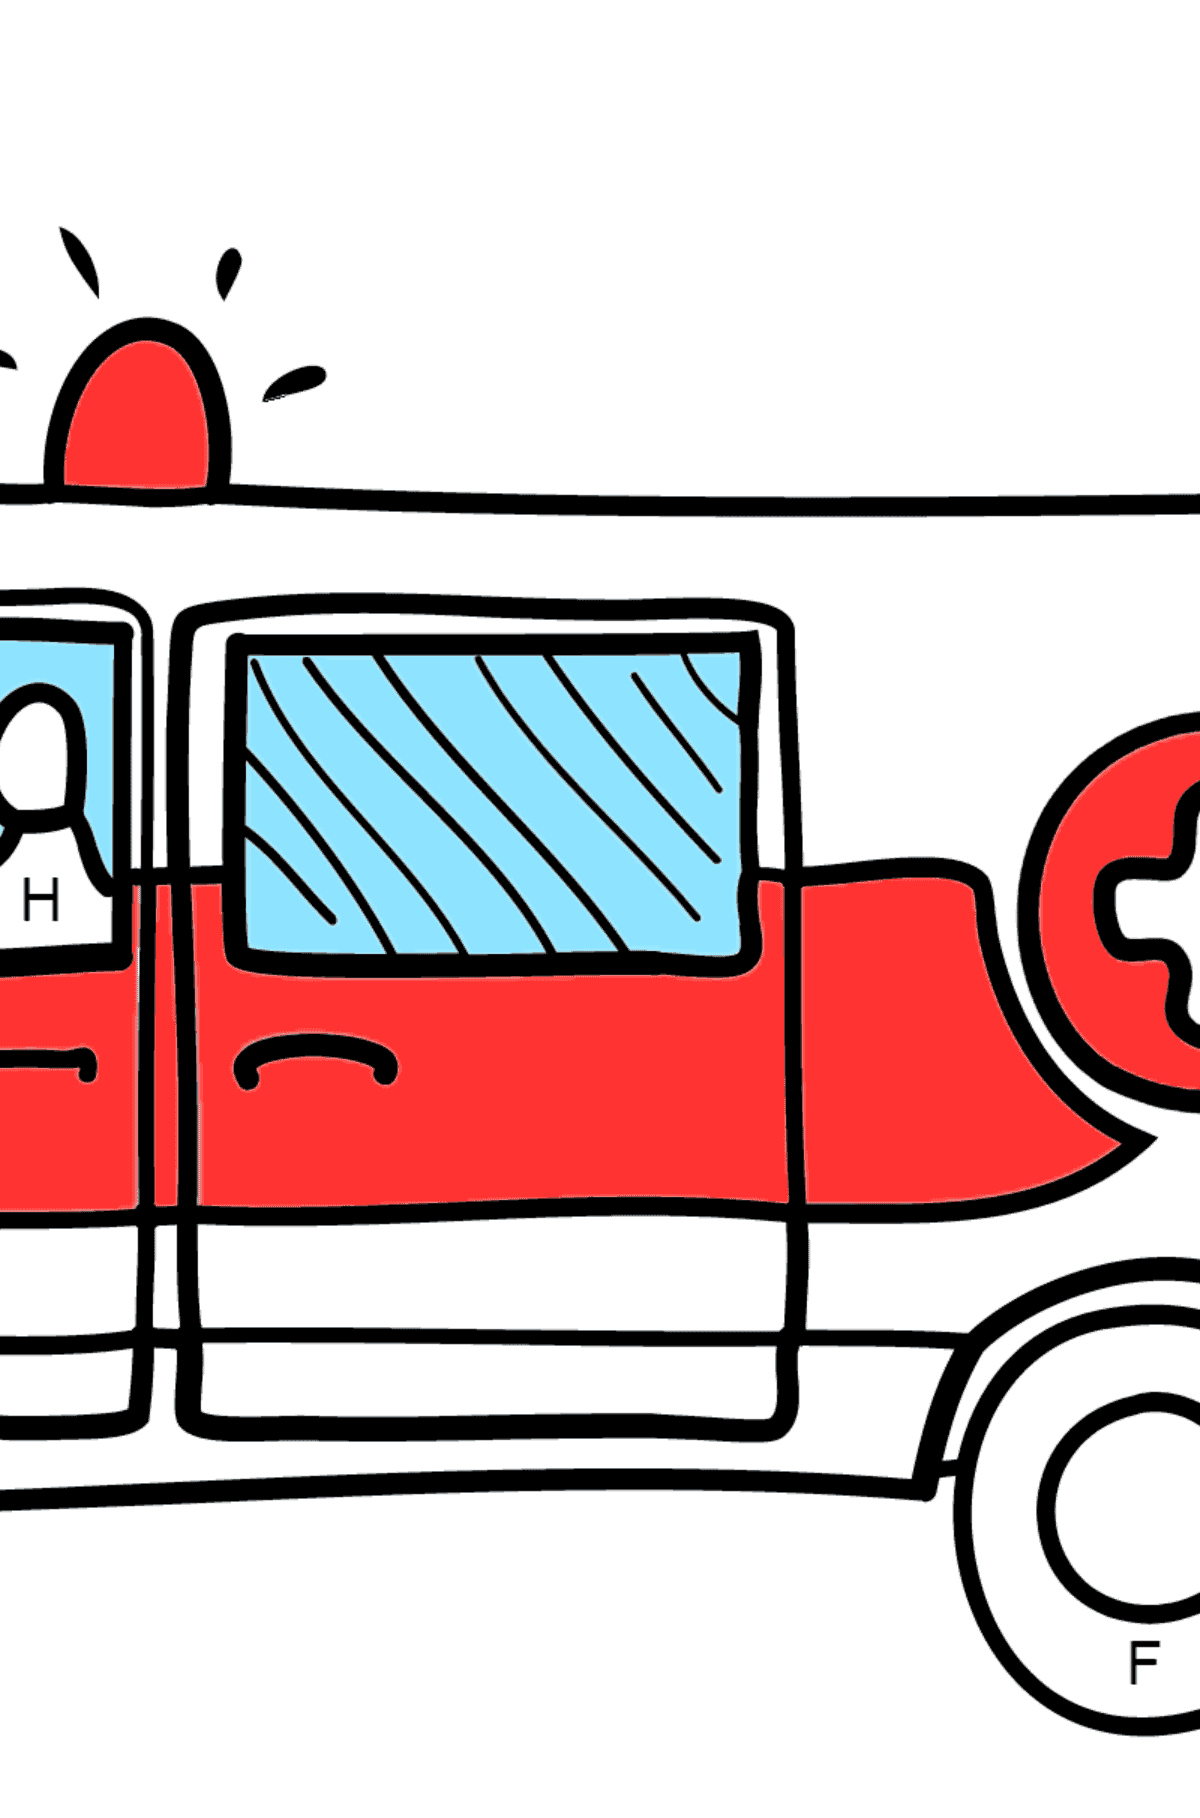 Coloring Page - An Ambulance for Kids  - Color by Letters